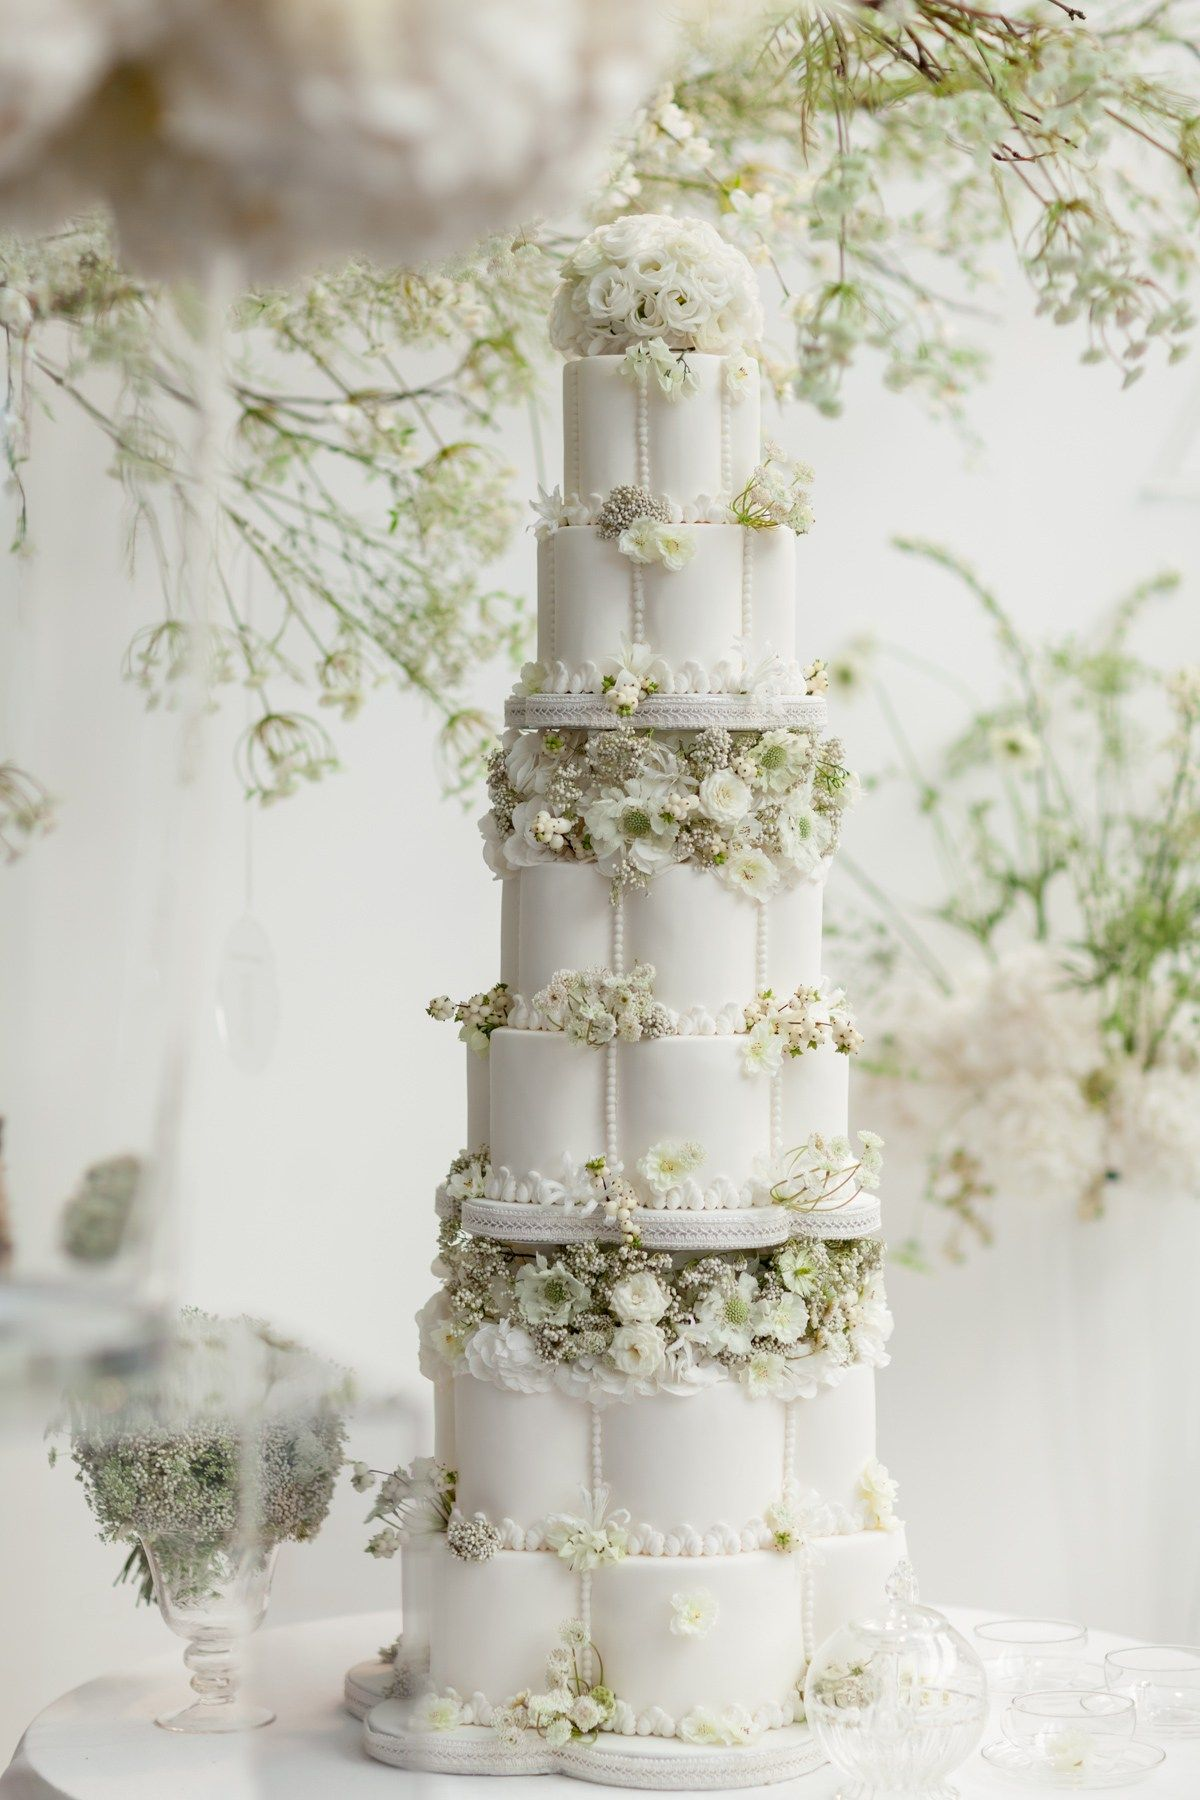 An All White Floral Fairytale By Zita Elze